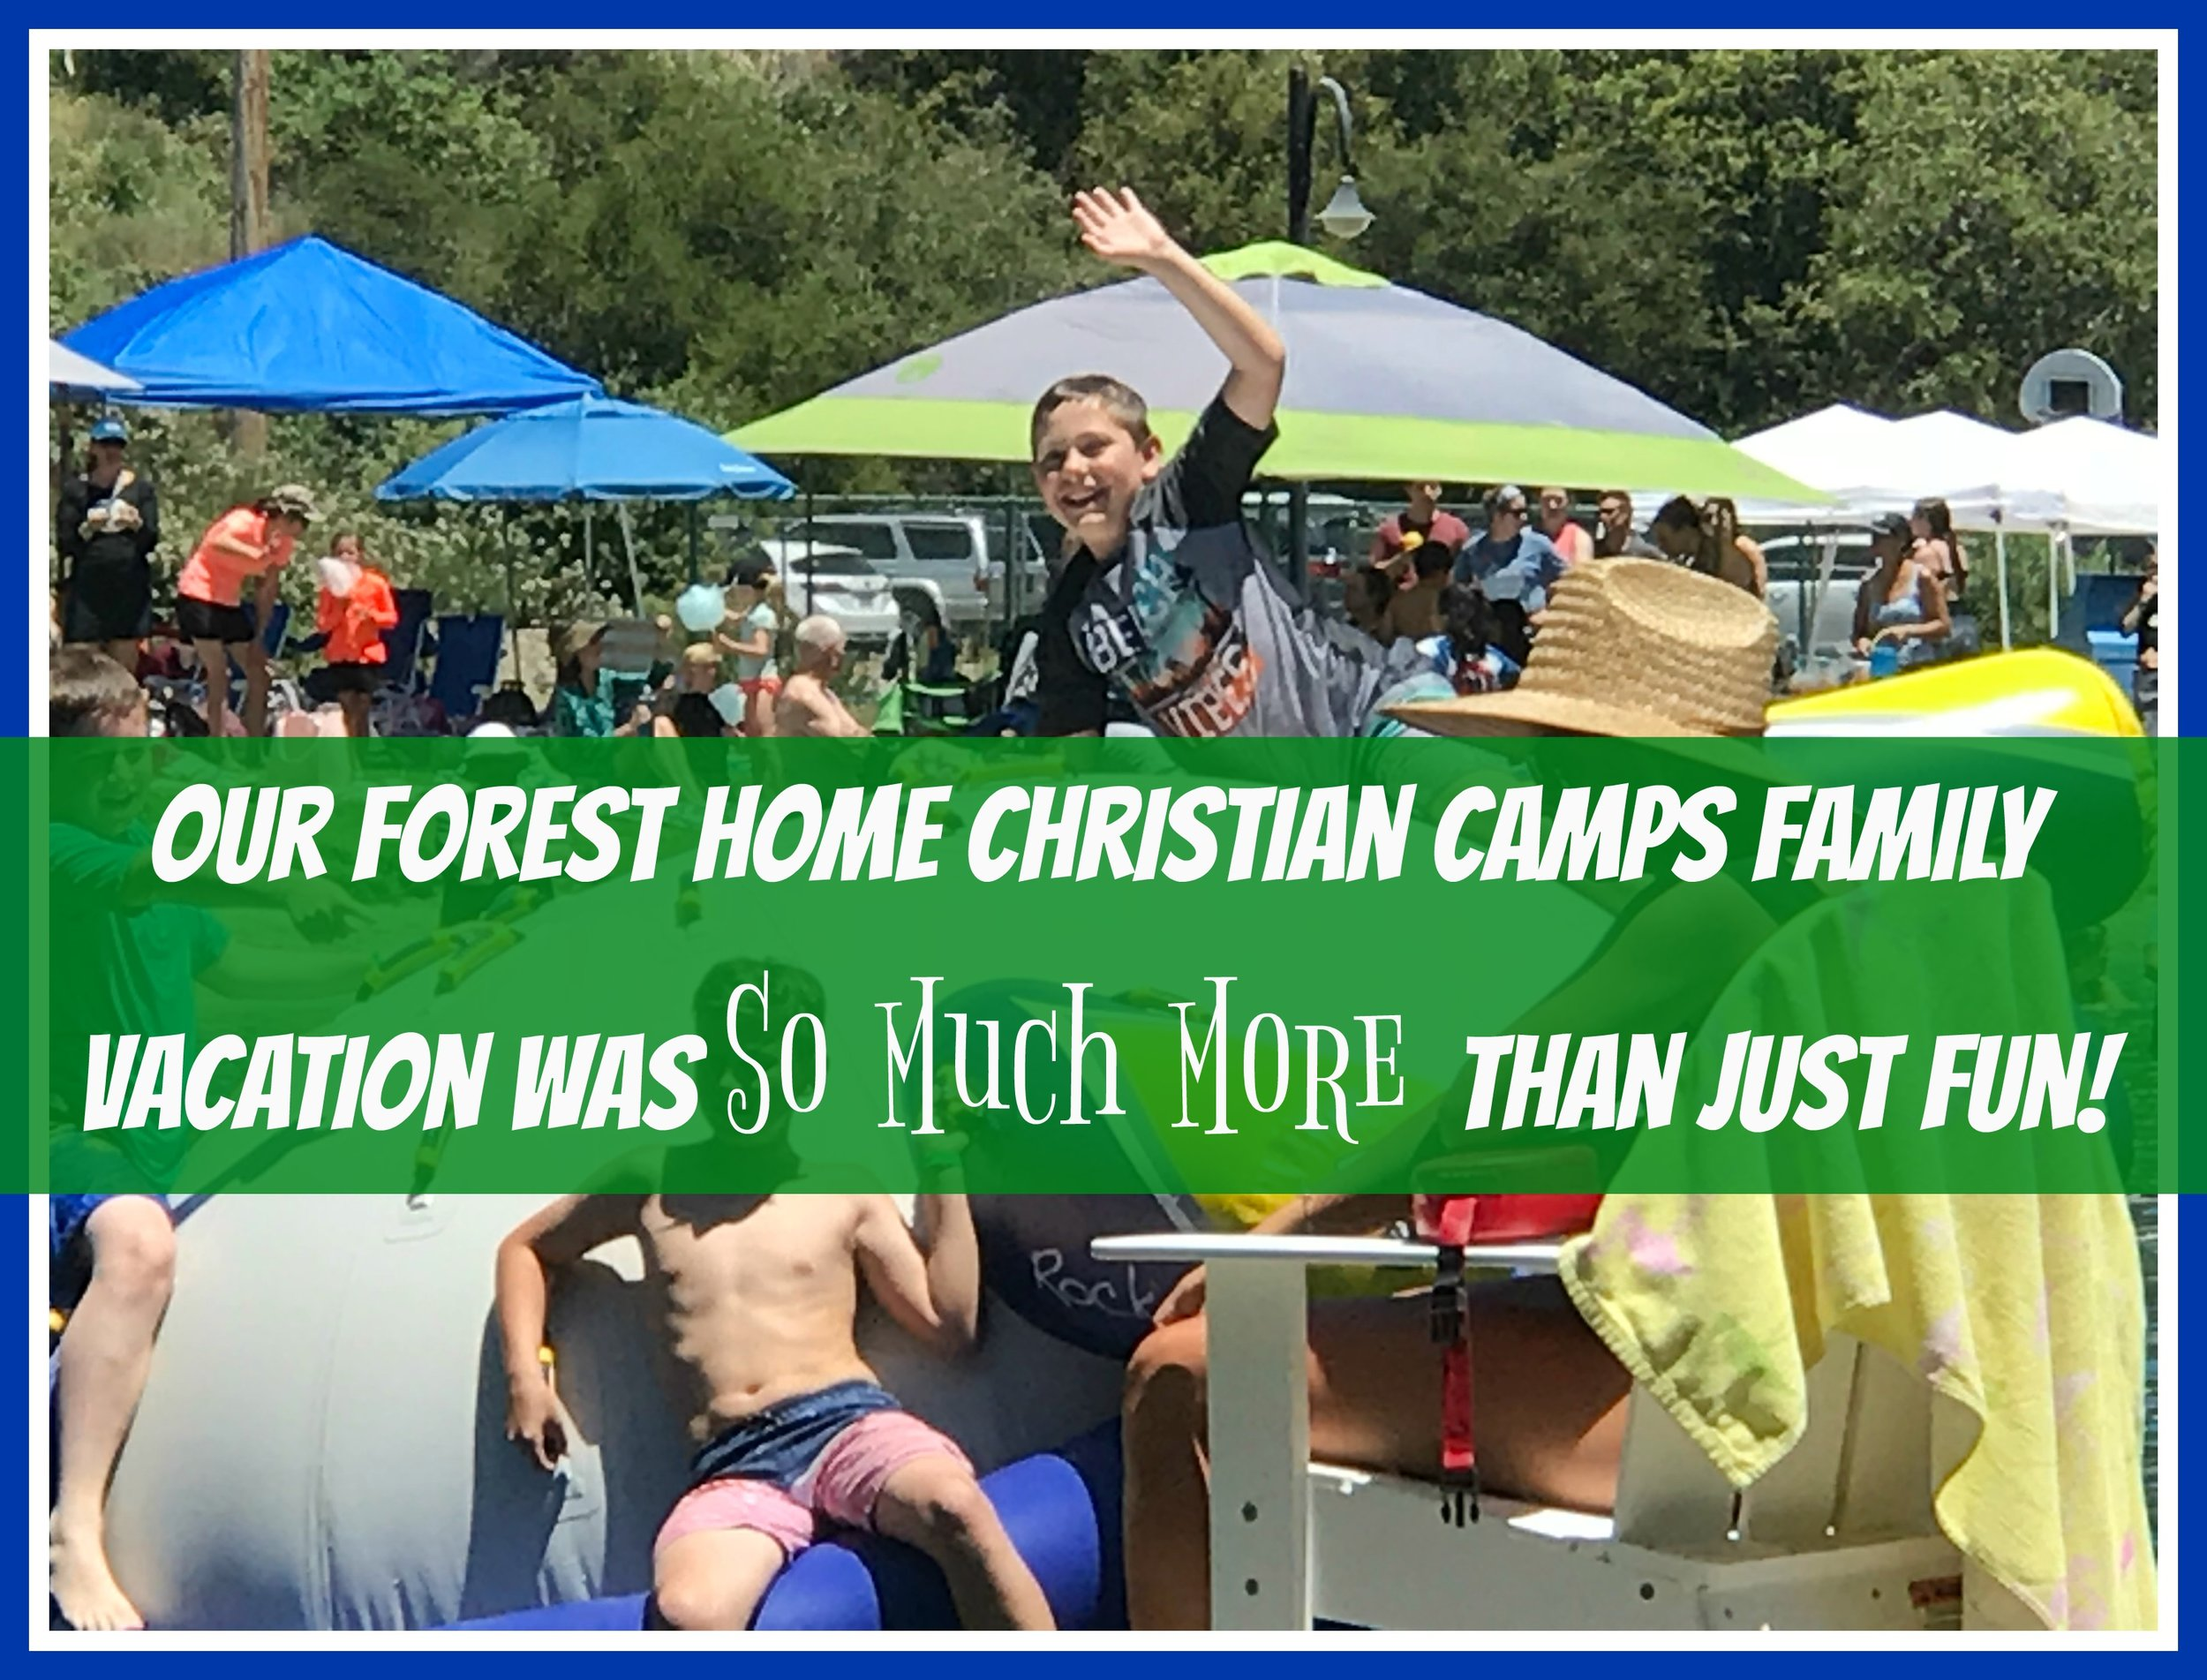 Our Forest Home Christian Camps Family Vacation Was So Much More Than Just Fun!.jpg